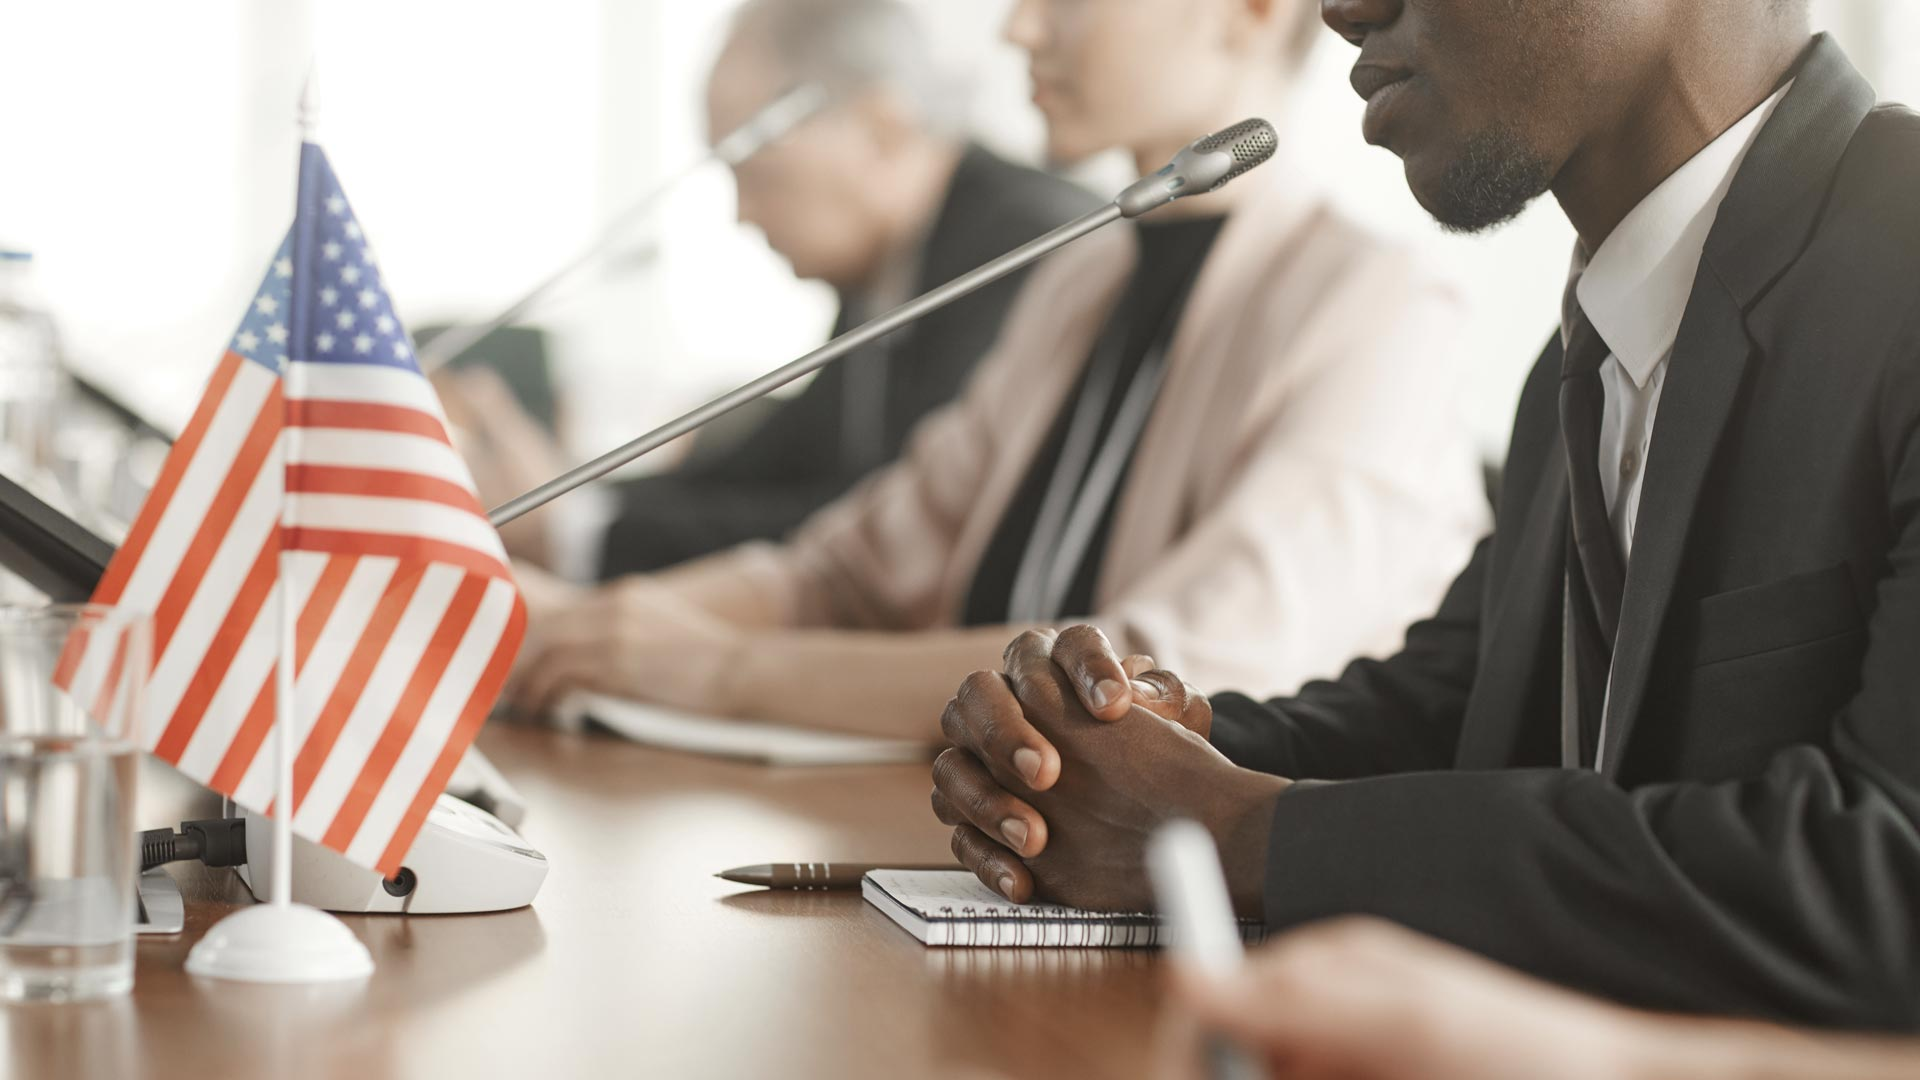 Man presenting at a meeting with an American flag on the table